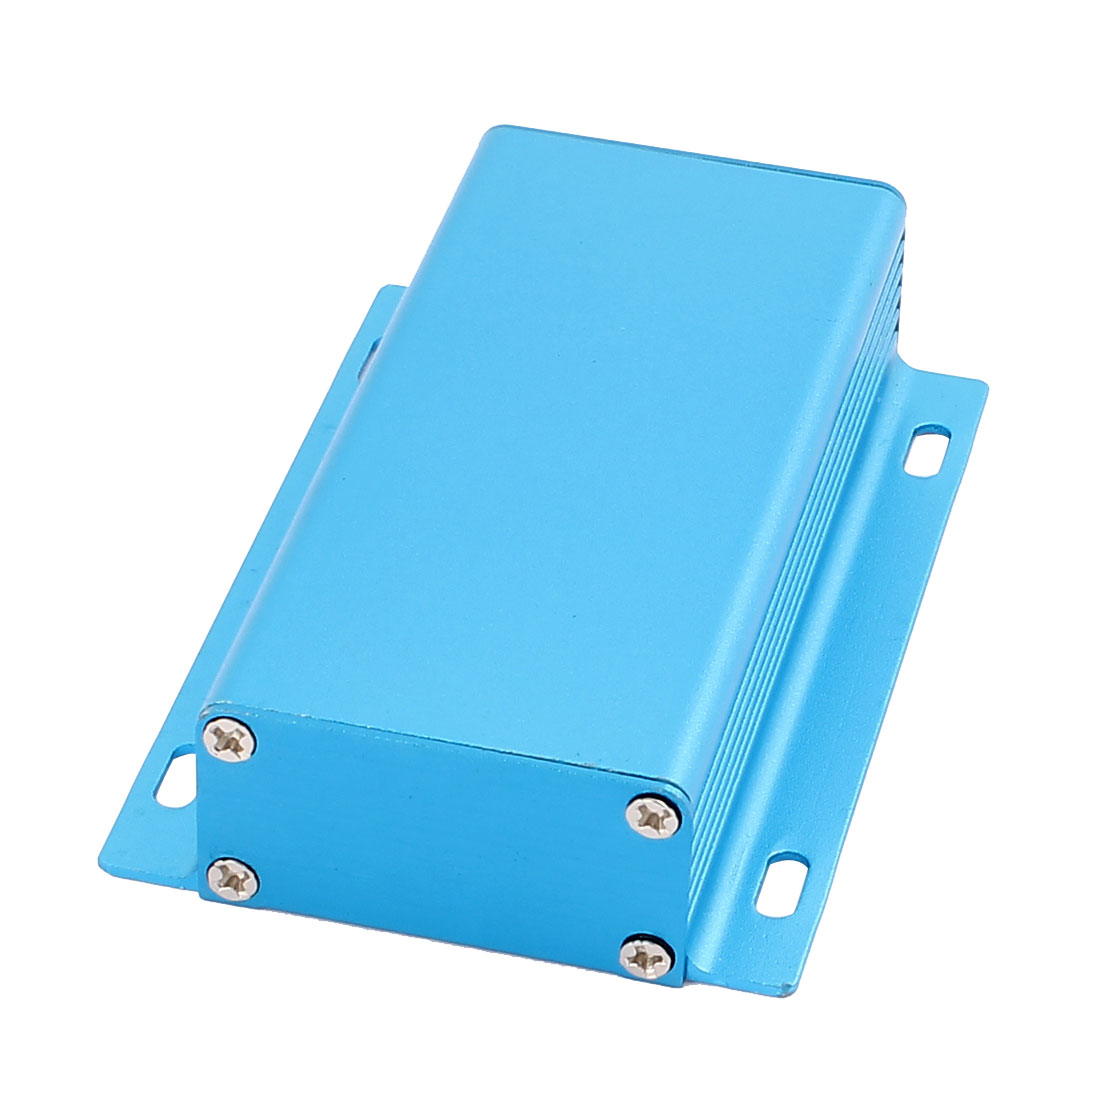 108 x 70 x 25mm Multi-purpose Extruded Aluminum Enclosure Electronic Box Blue